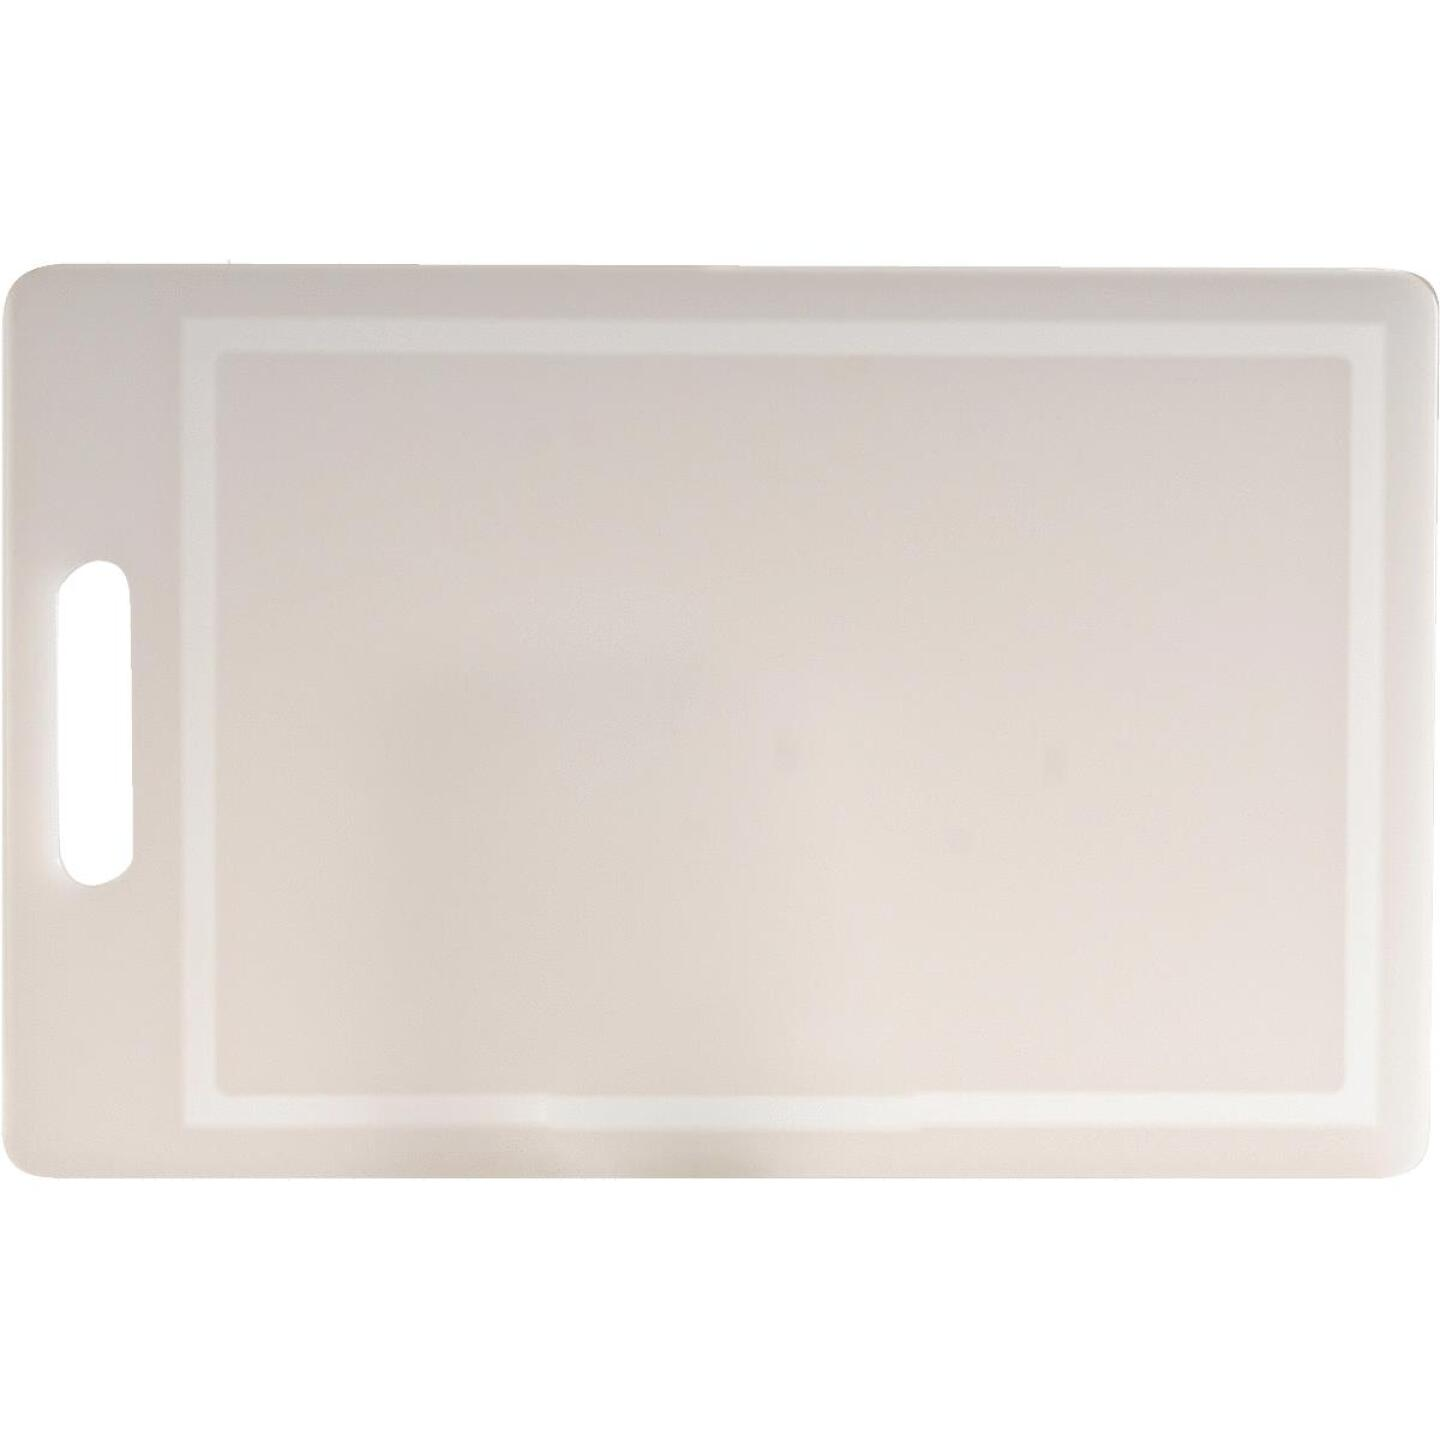 Norpro 10 In. x 16 In. White Polyethylene Professional Cutting Board Image 1